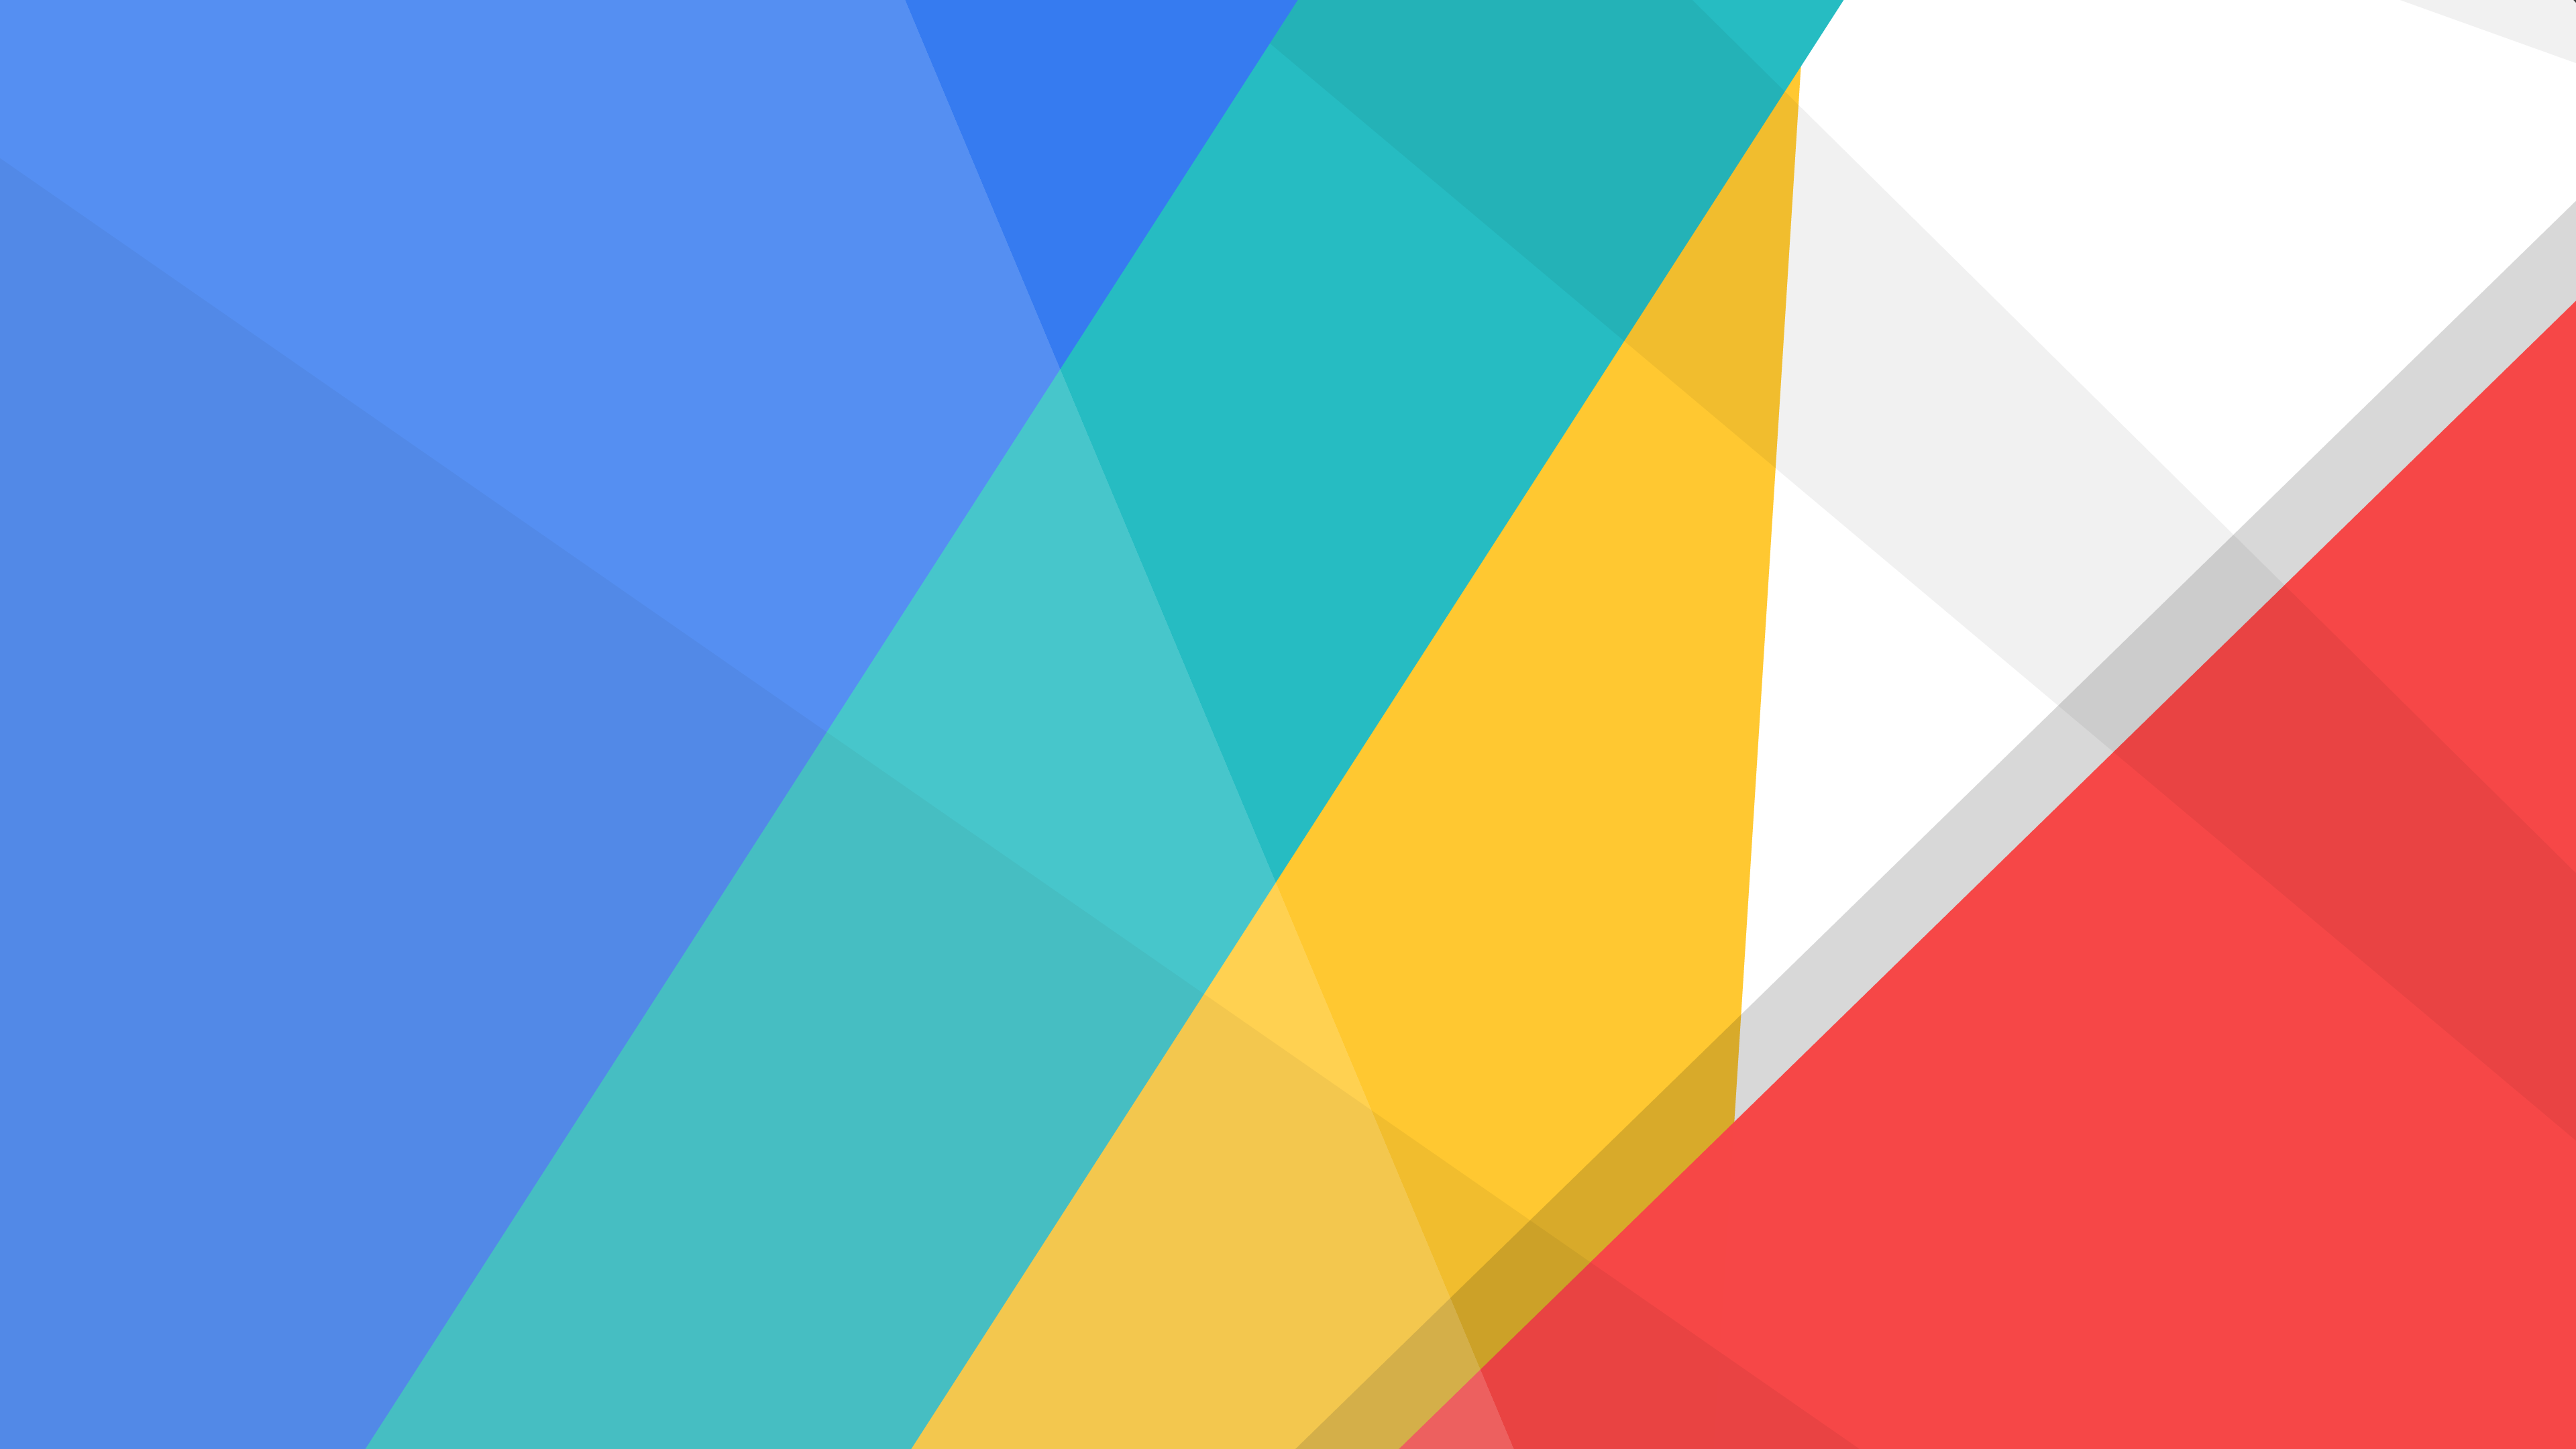 Material design 4k hd abstract 4k wallpapers images for Material design wallpaper 4k